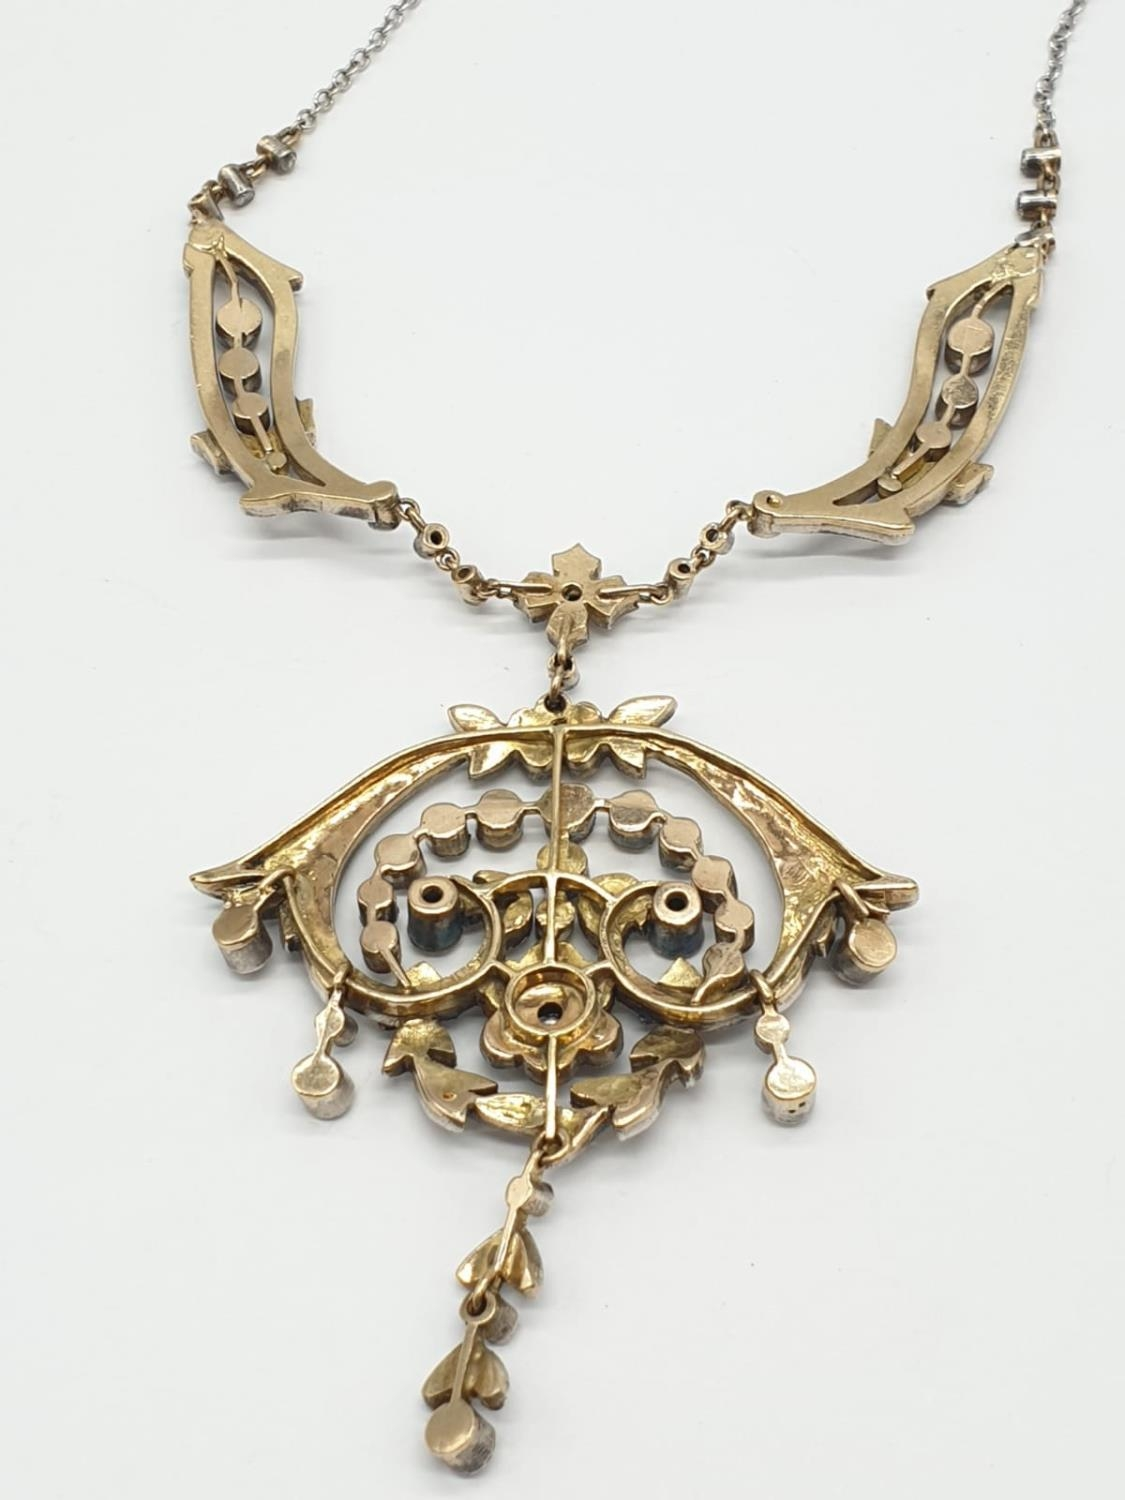 9ct Gold and Diamond Vintage PENDANT with over 3 ct of Diamonds. 42.4g 40cm length. - Image 5 of 6